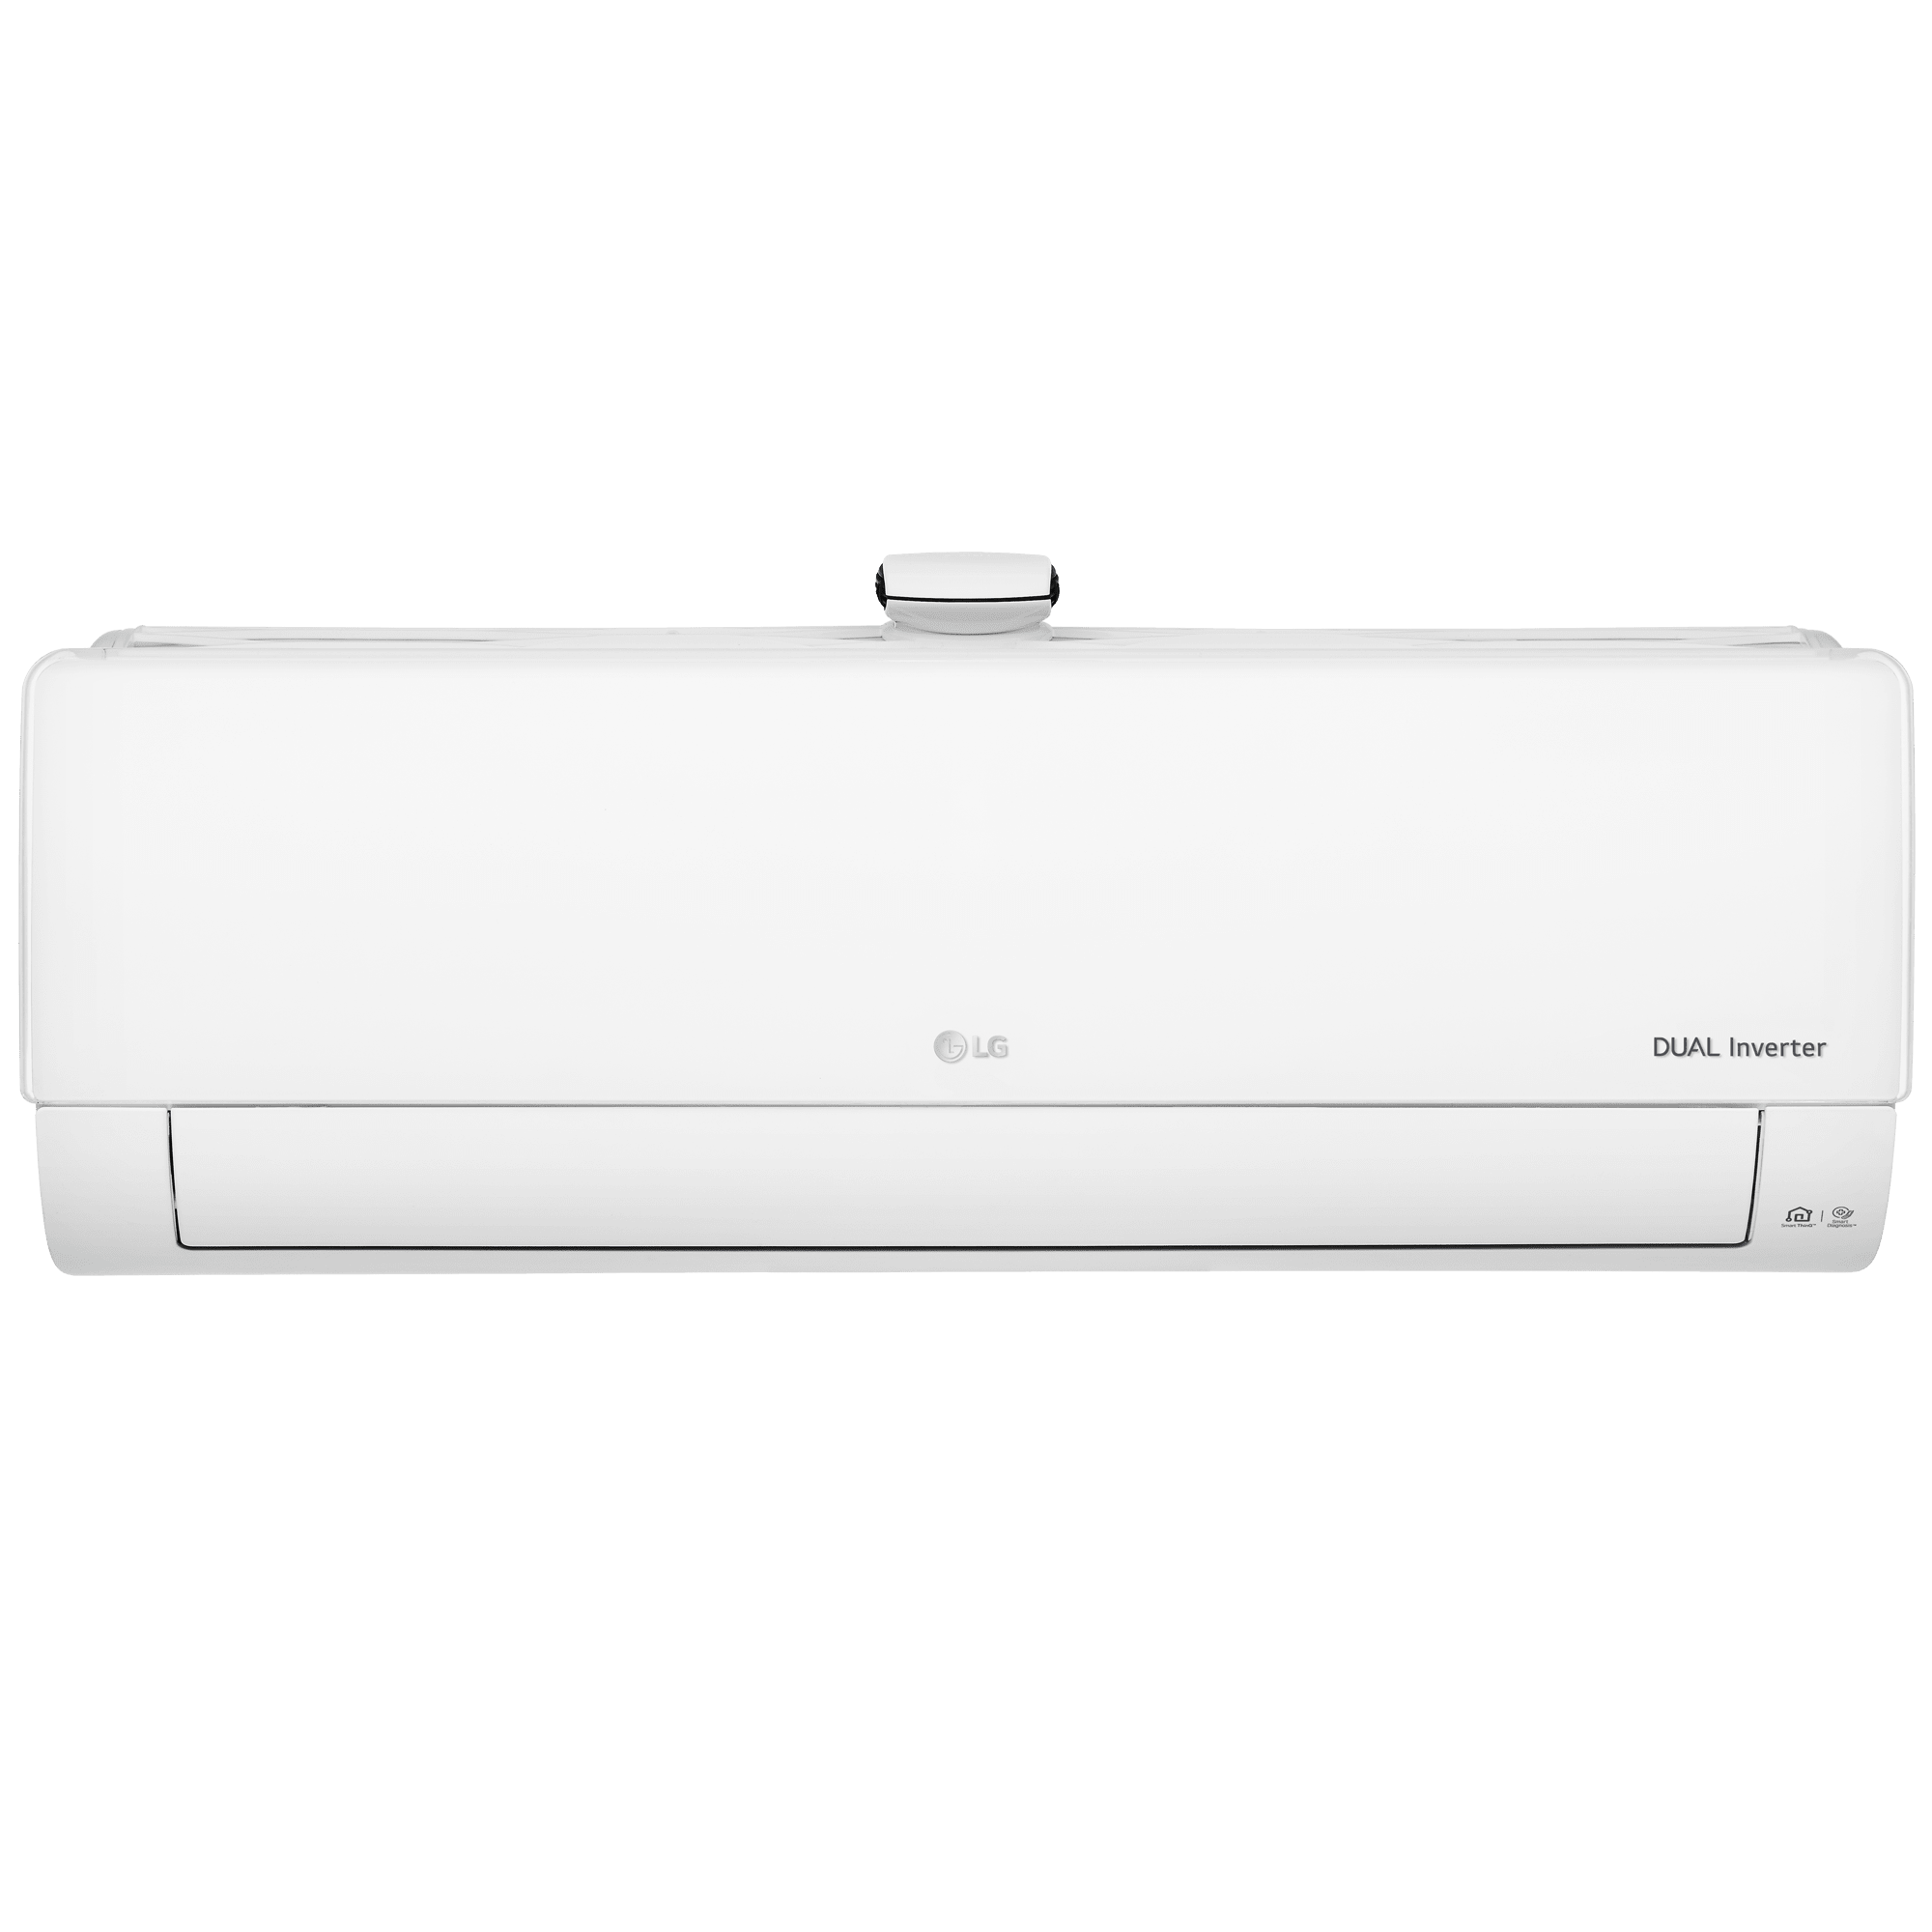 LG 2 Ton 3 Star Inverter Split AC (Air Purification Function, Wi-Fi, Copper Condenser, MS-Q24APXE, White)